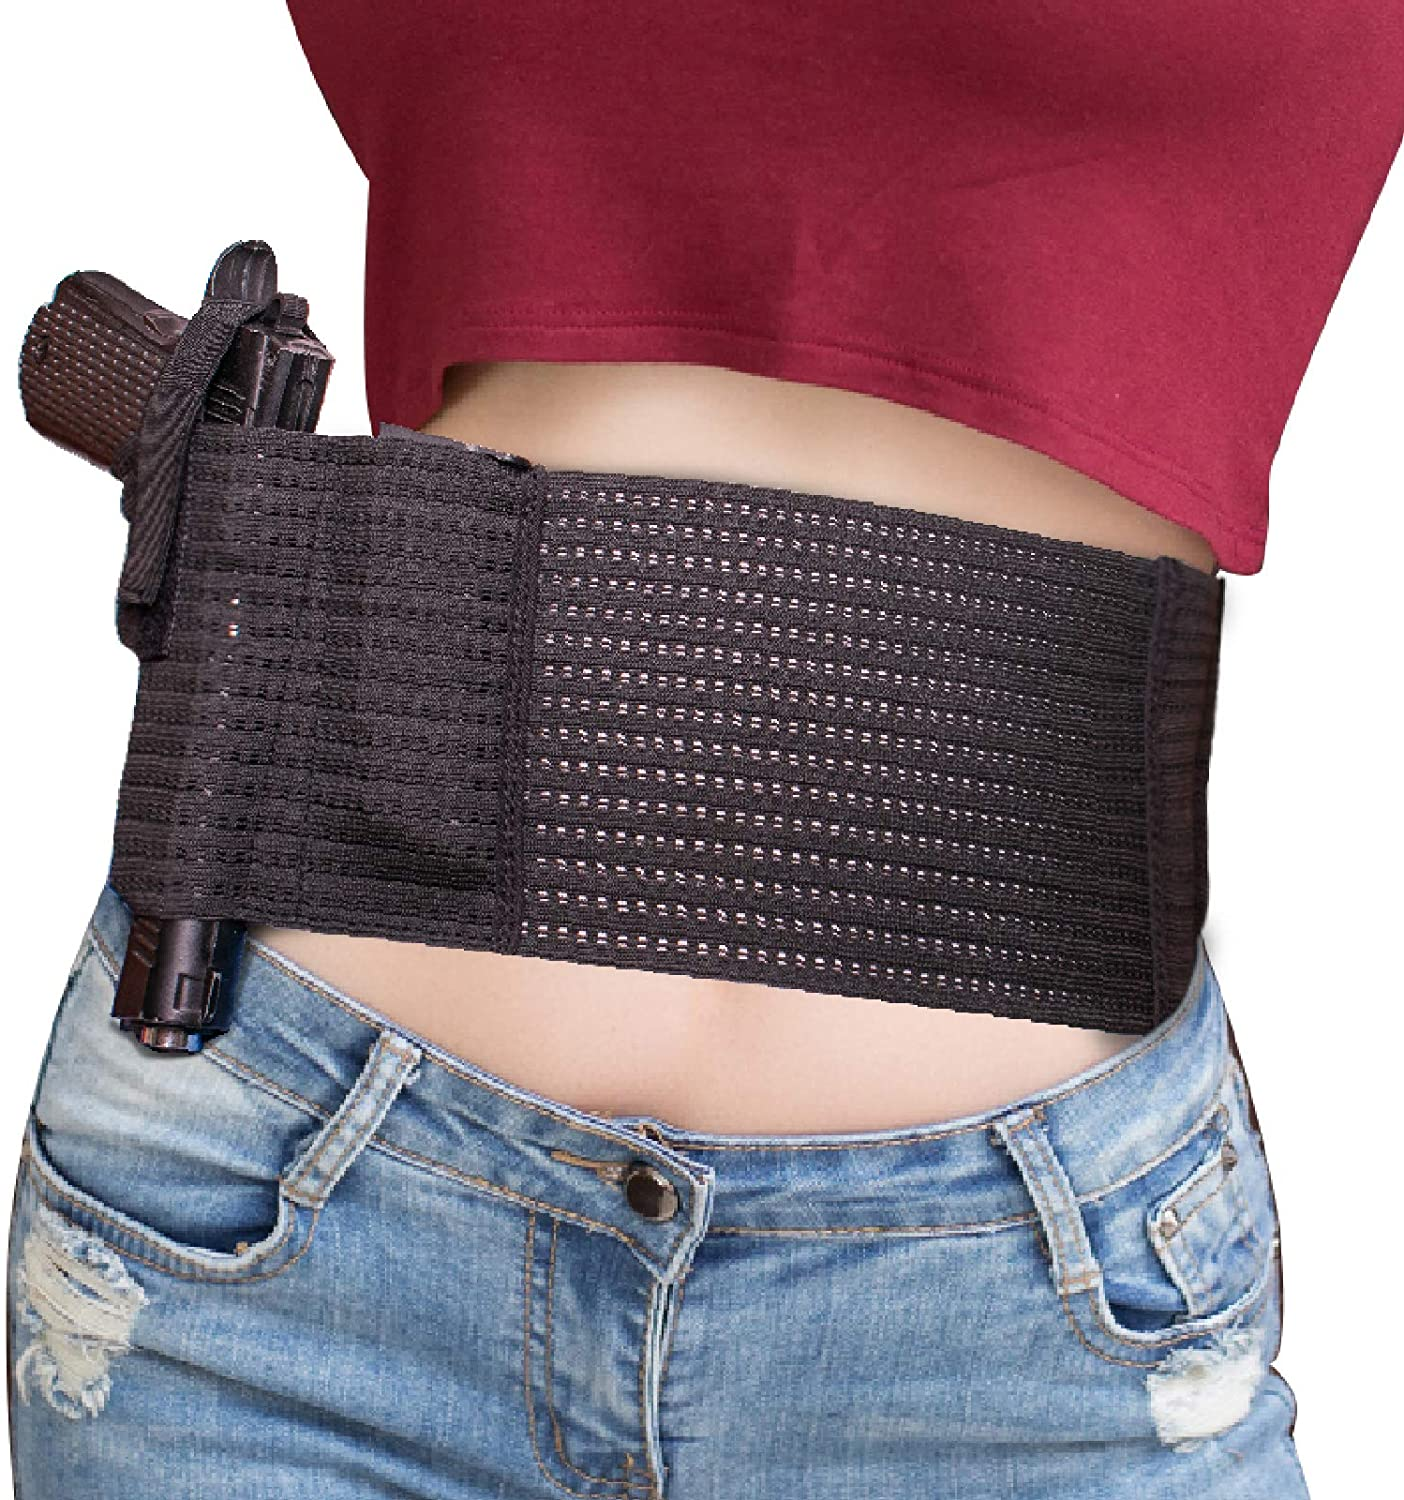 POYOLEE Belly Band Holster for Concealed Carry | Elastic IWB Holster for Women and Men Right and Left Hand Draw | Fits Subcompact Compact Pistols Revolvers